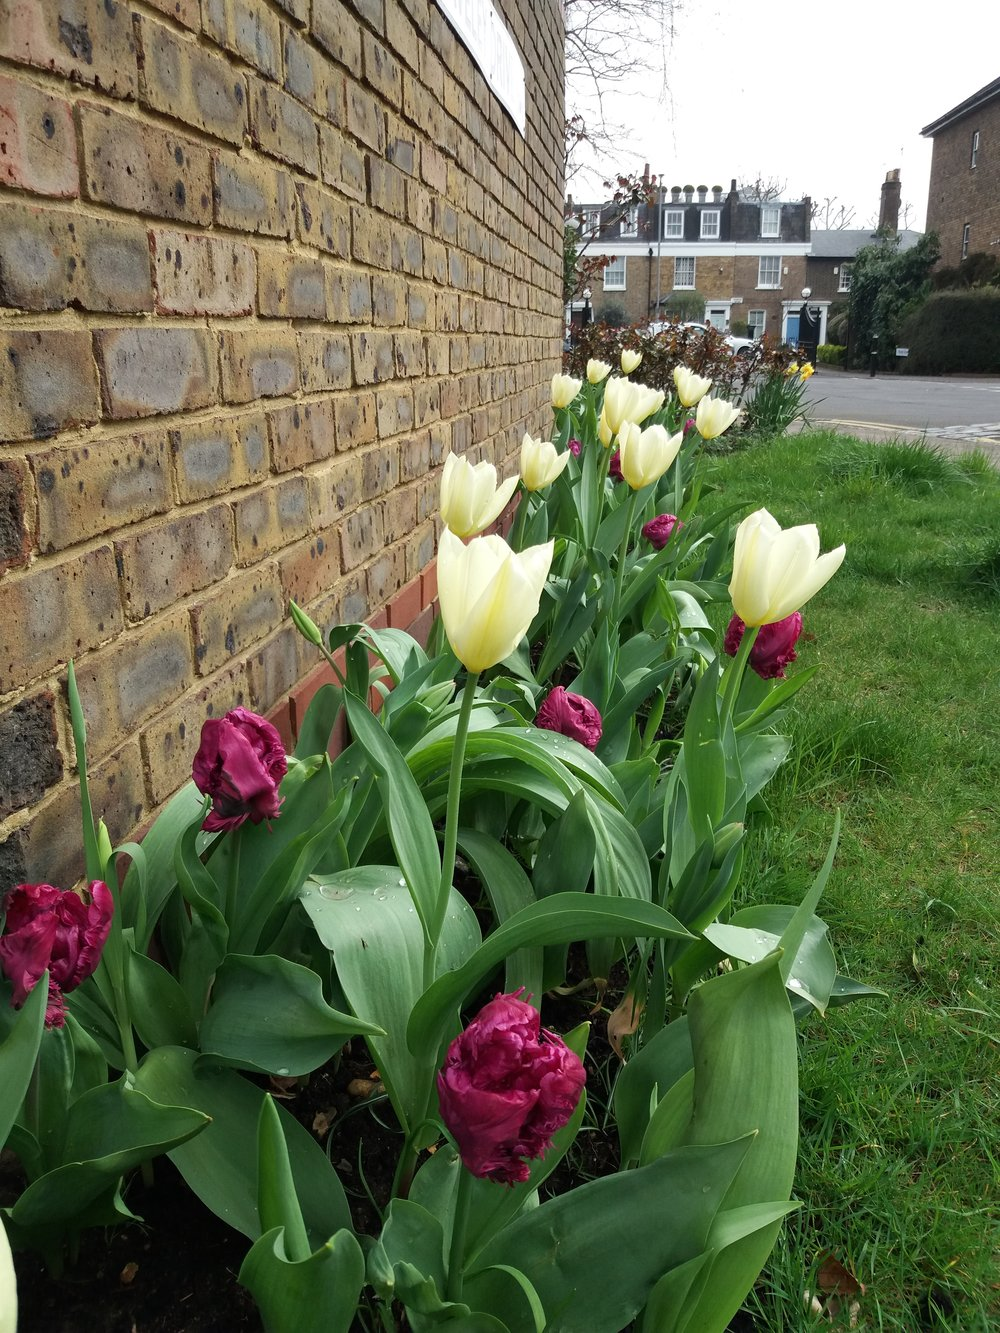 April 2018, Tulip bulbs planted in October in flower